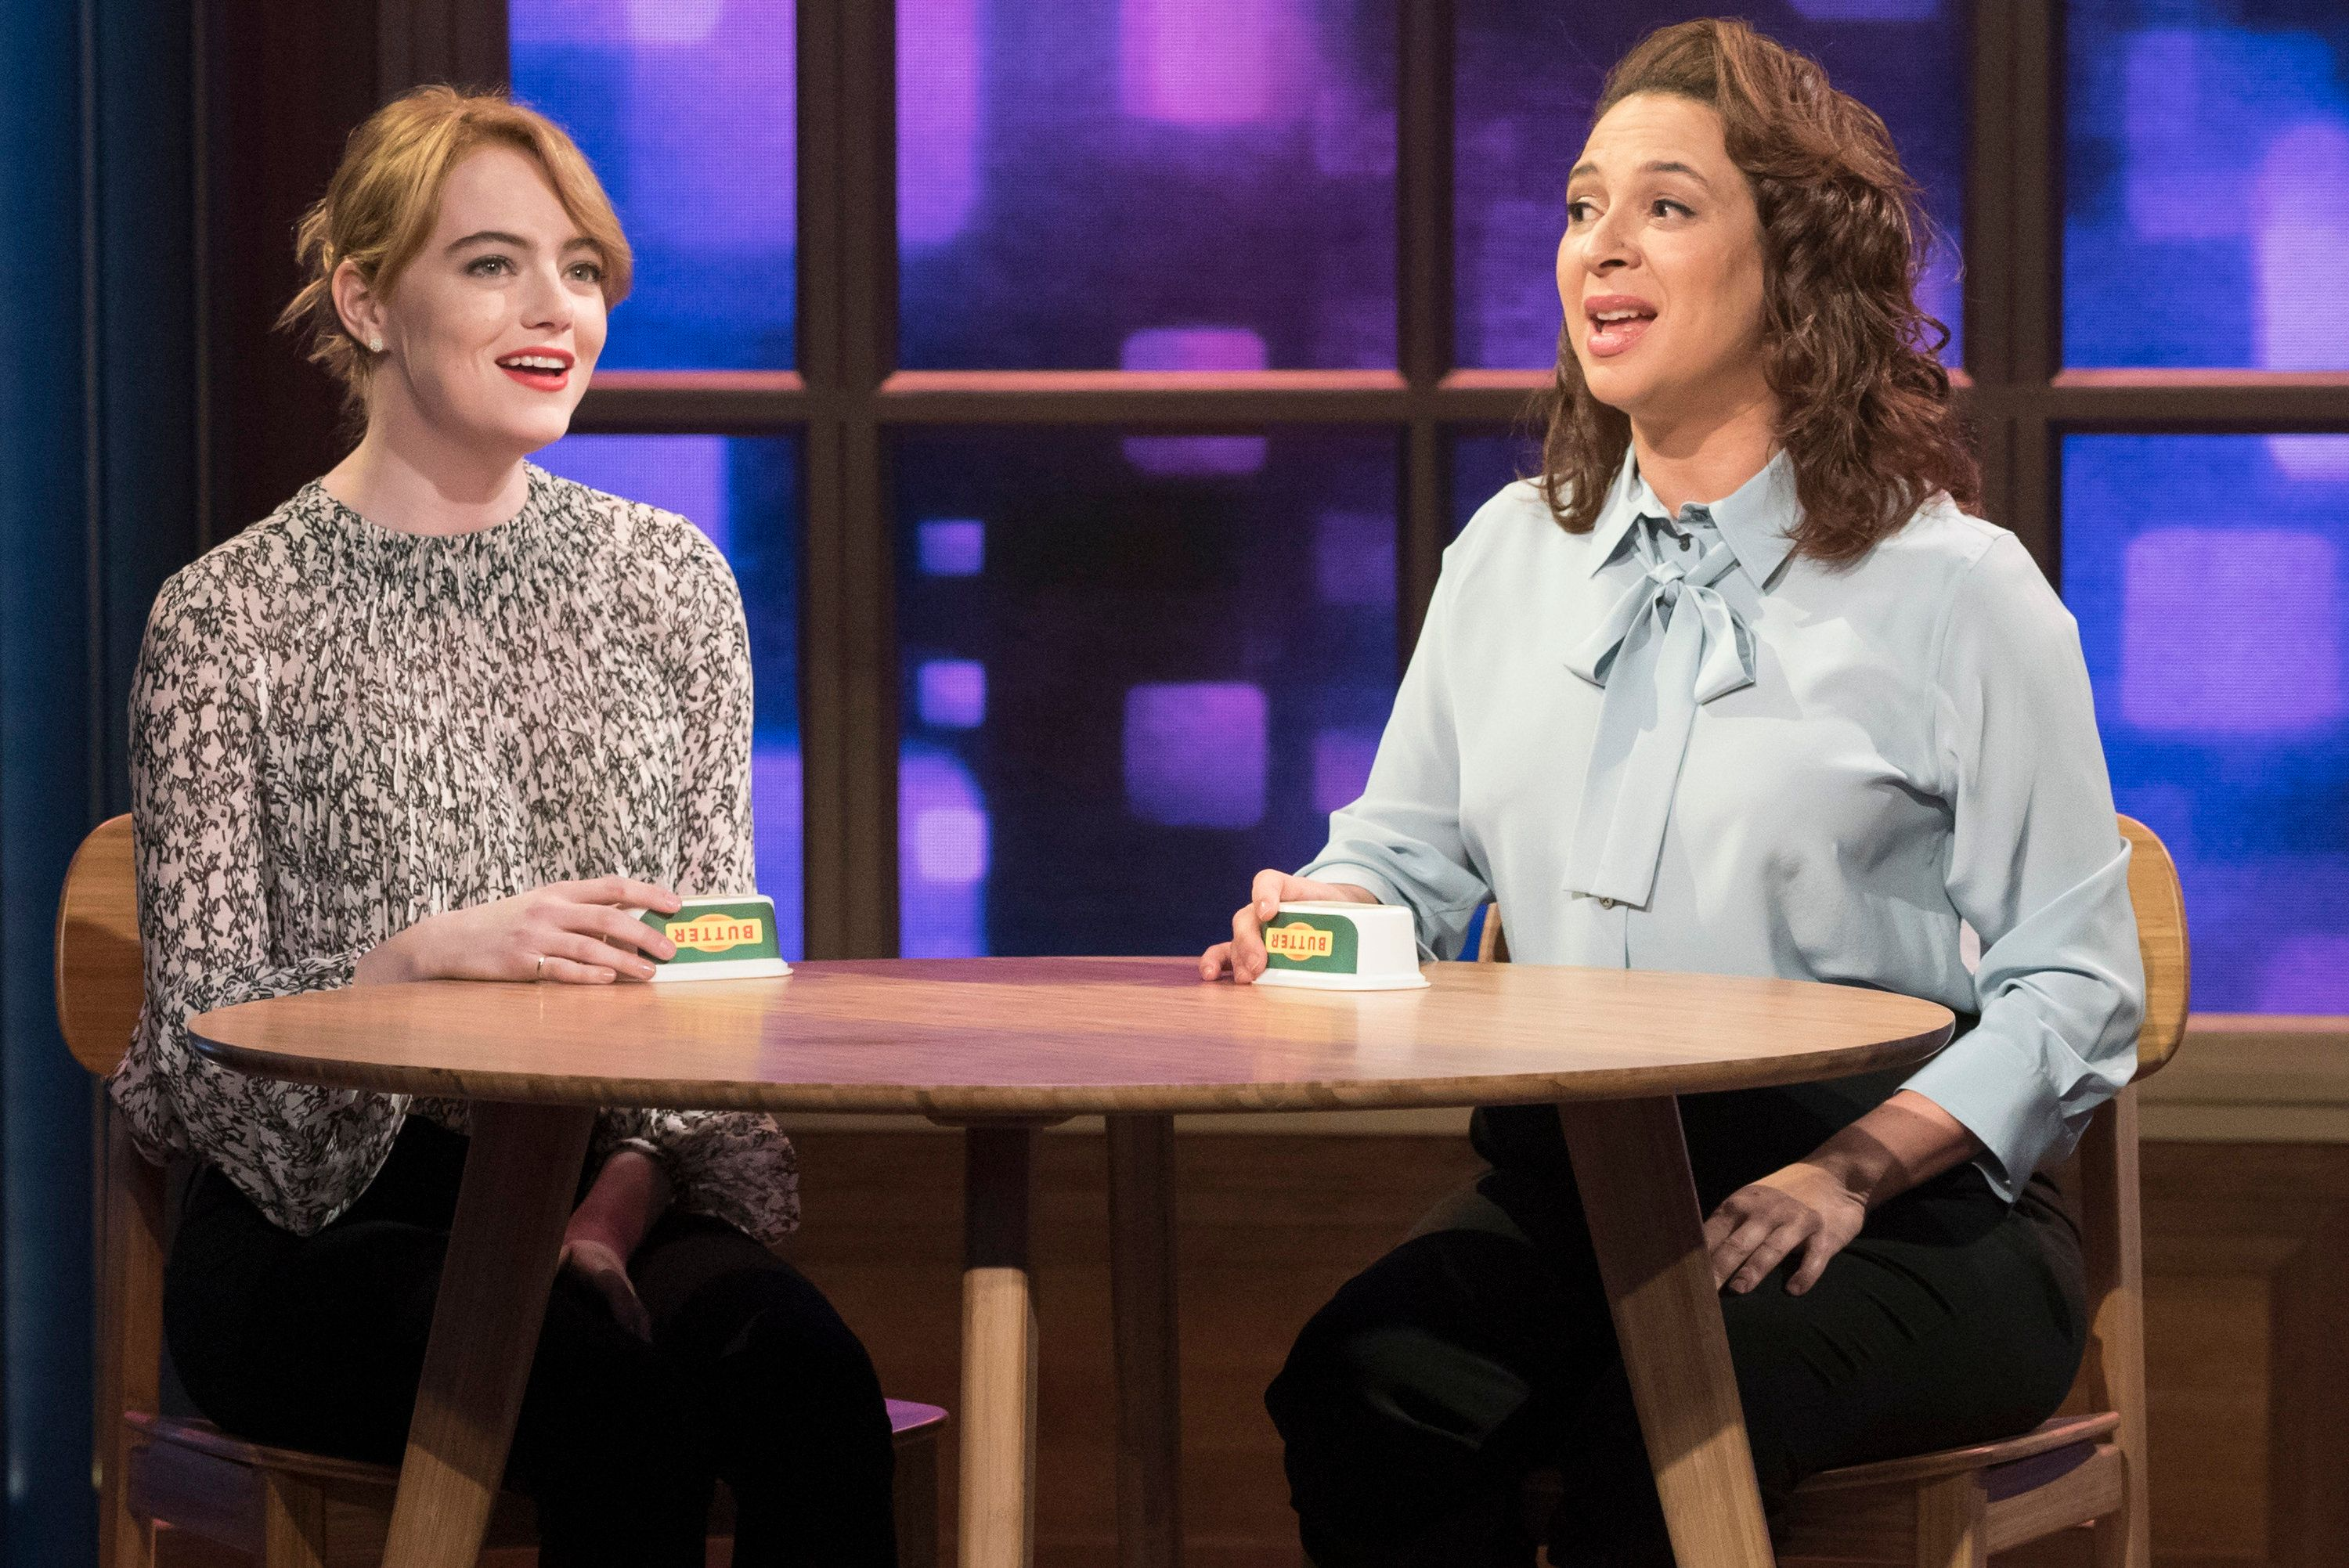 MAYA & MARTY -- Episode 106 -- Pictured: (l-r) Emma Stone, Maya Rudolph during the 'Call Your Girlfriend' song on July 12, 2016 -- (Photo by: Virginia Sherwood/NBC/NBCU Photo Bank via Getty Images)